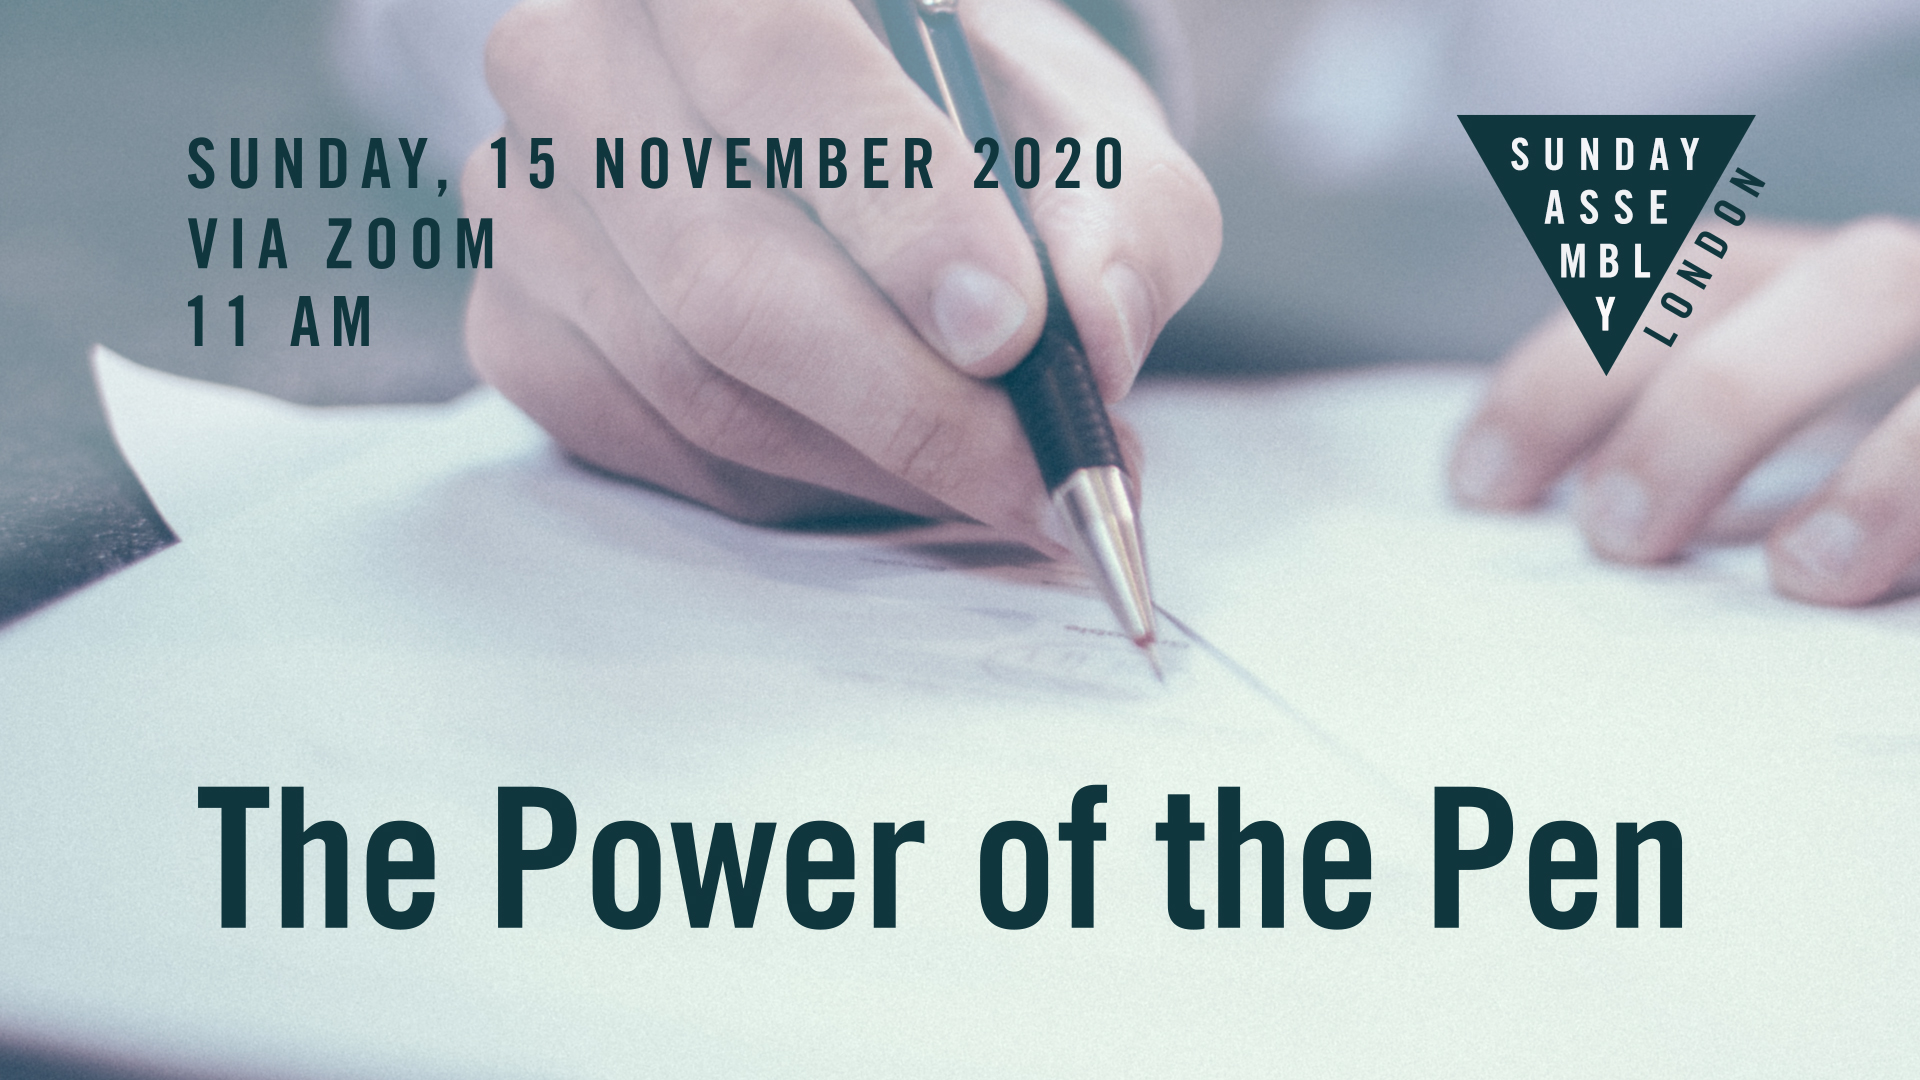 Power of the pen event cover art